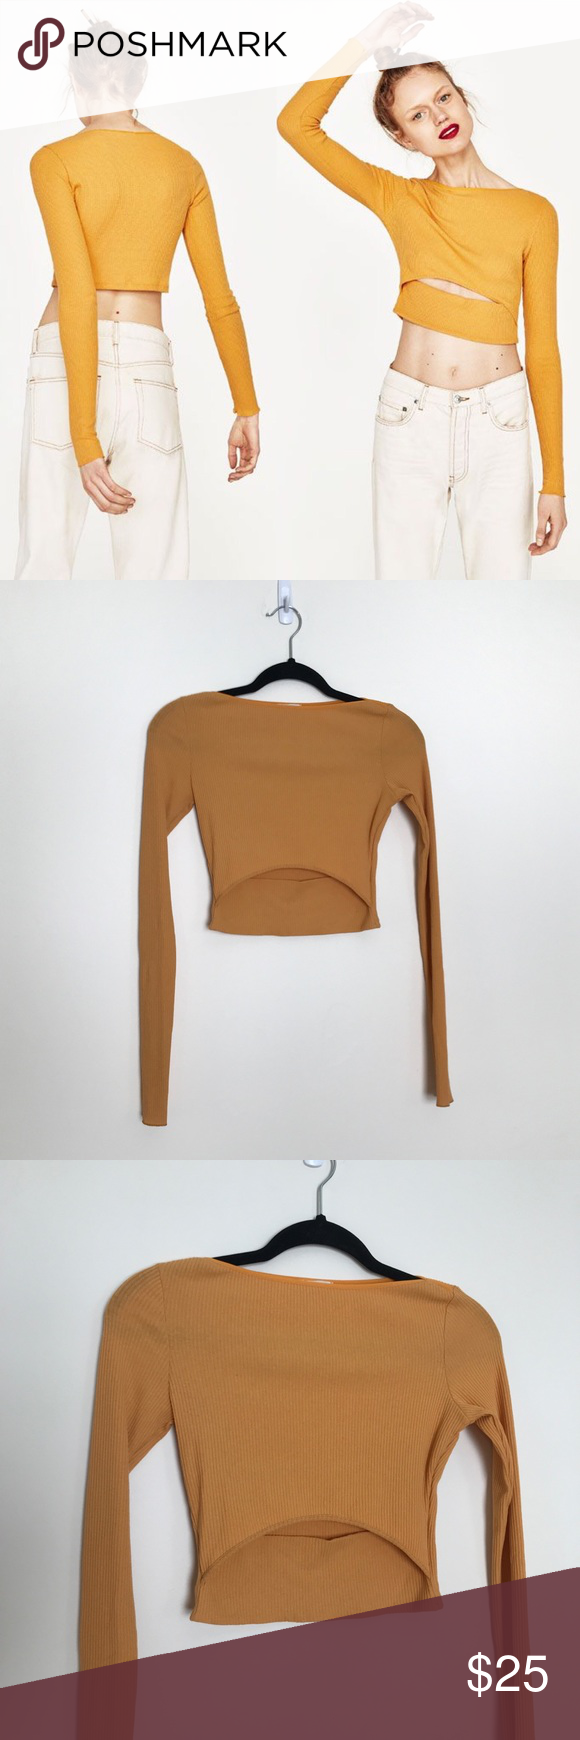 e94b9dc343968 Zara Join Life Yellow Long Sleeve Crop Top Cutout Zara Join Life Yellow  Long Sleeve Crop Top Cutout Color is deep yellow (in between yellow and  orange) Size ...